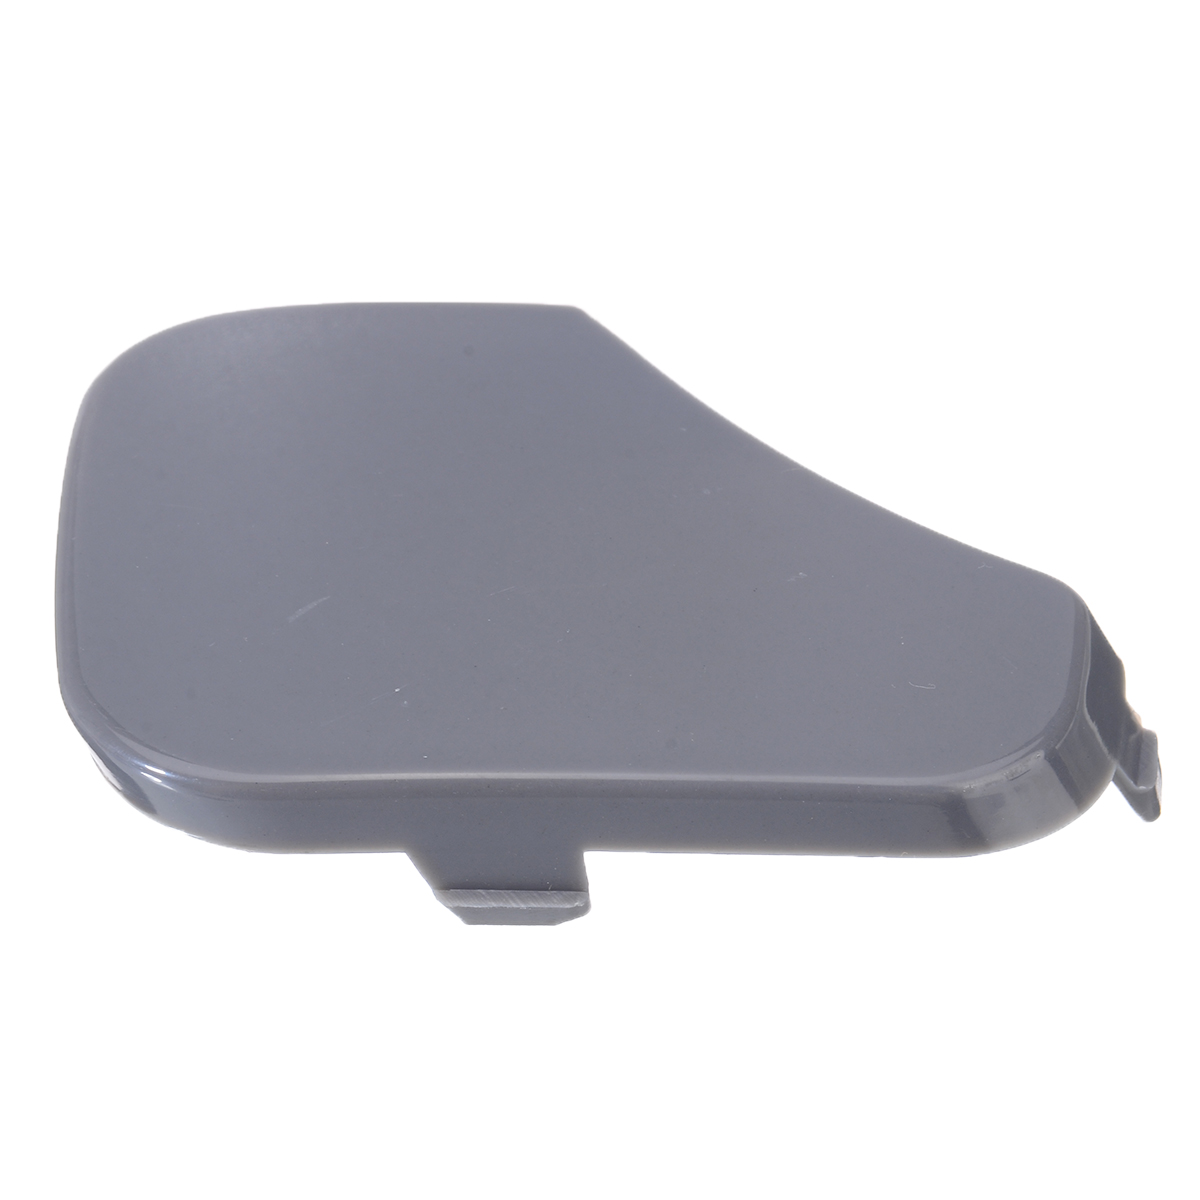 New Front Bumper Towing Eye Cover 1pc Car Styling Front Bumper Towing Cover Fit For FORD For FIESTA MK6 1375861